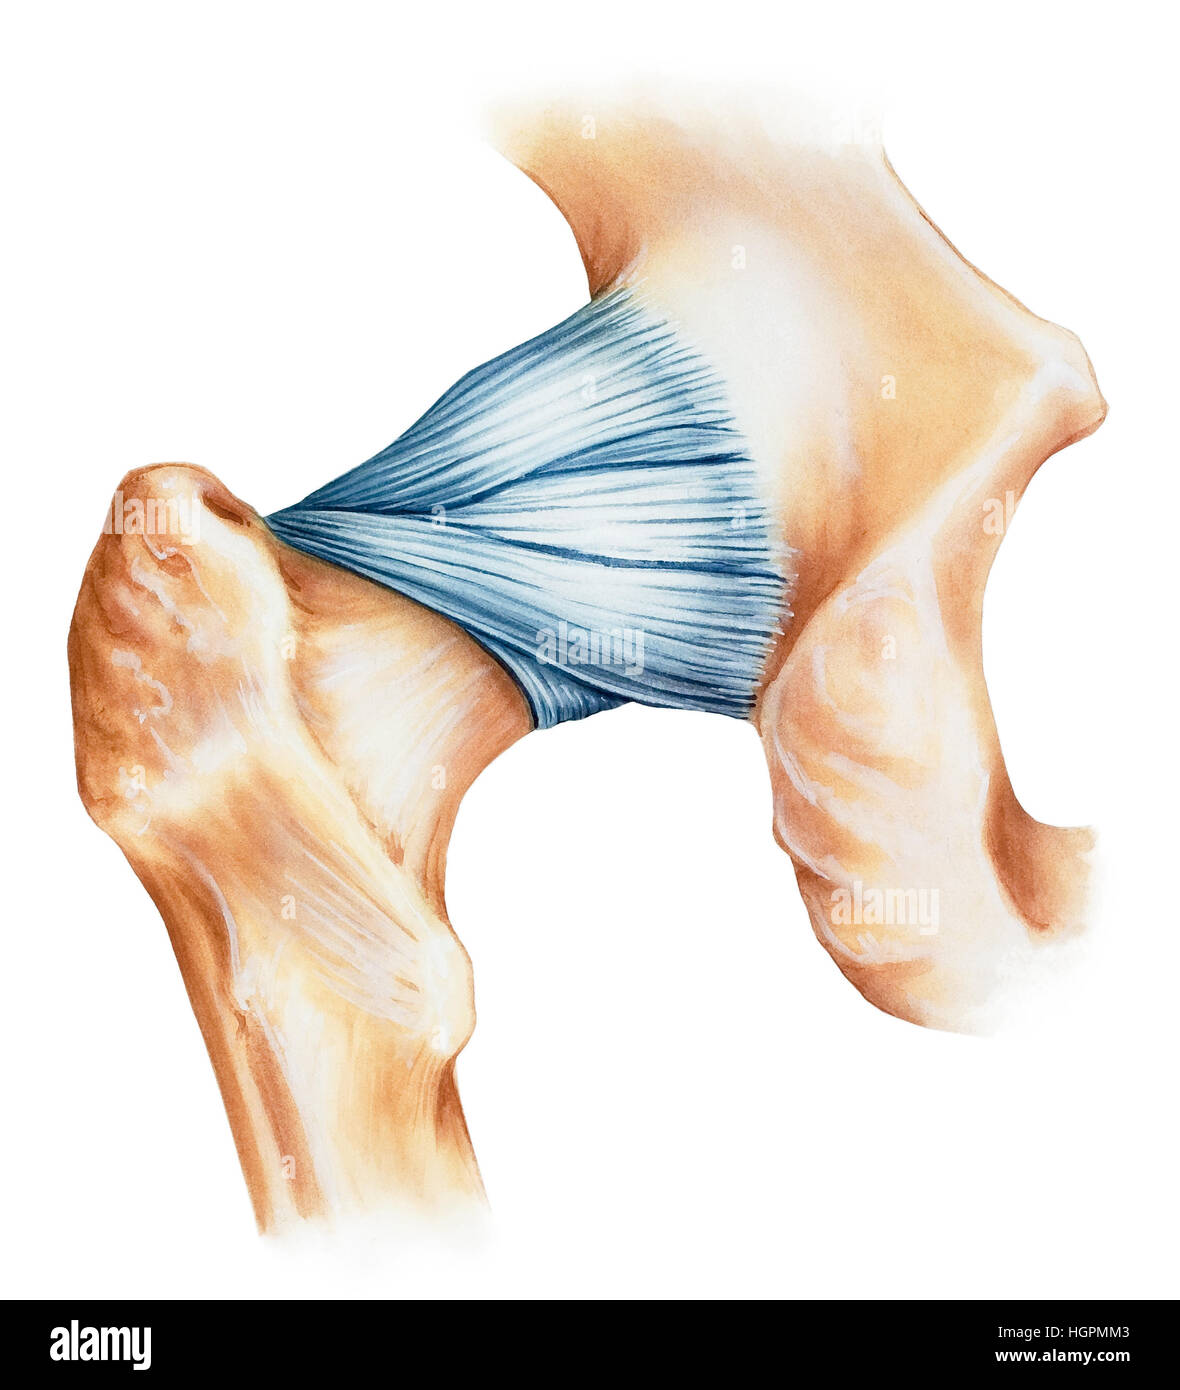 Hip joint capsule ligaments, dorsal view. Shown are the iliofemoral ligament (above), ischiofemoral ligament (center), Stock Photo